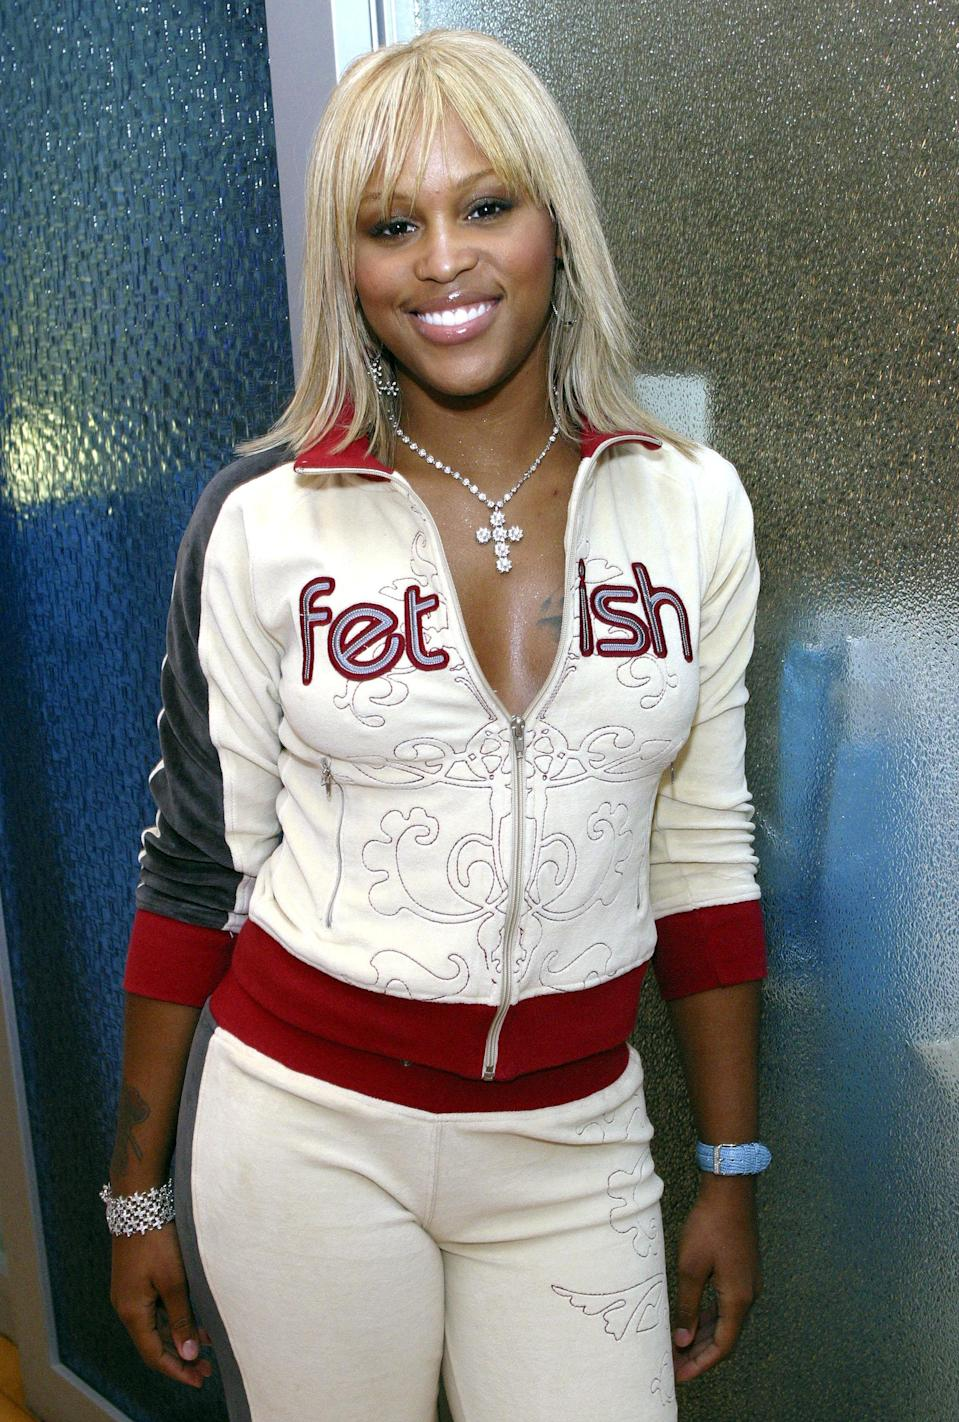 Rapper Eve launched her clothing line, Fetish, in 2003. The collection was a perfect time capsule of the early-aughts, complete with bedazzled tees, flashy denim, mega-hardware bags, and colorful tracksuits. It lasted until 2009.